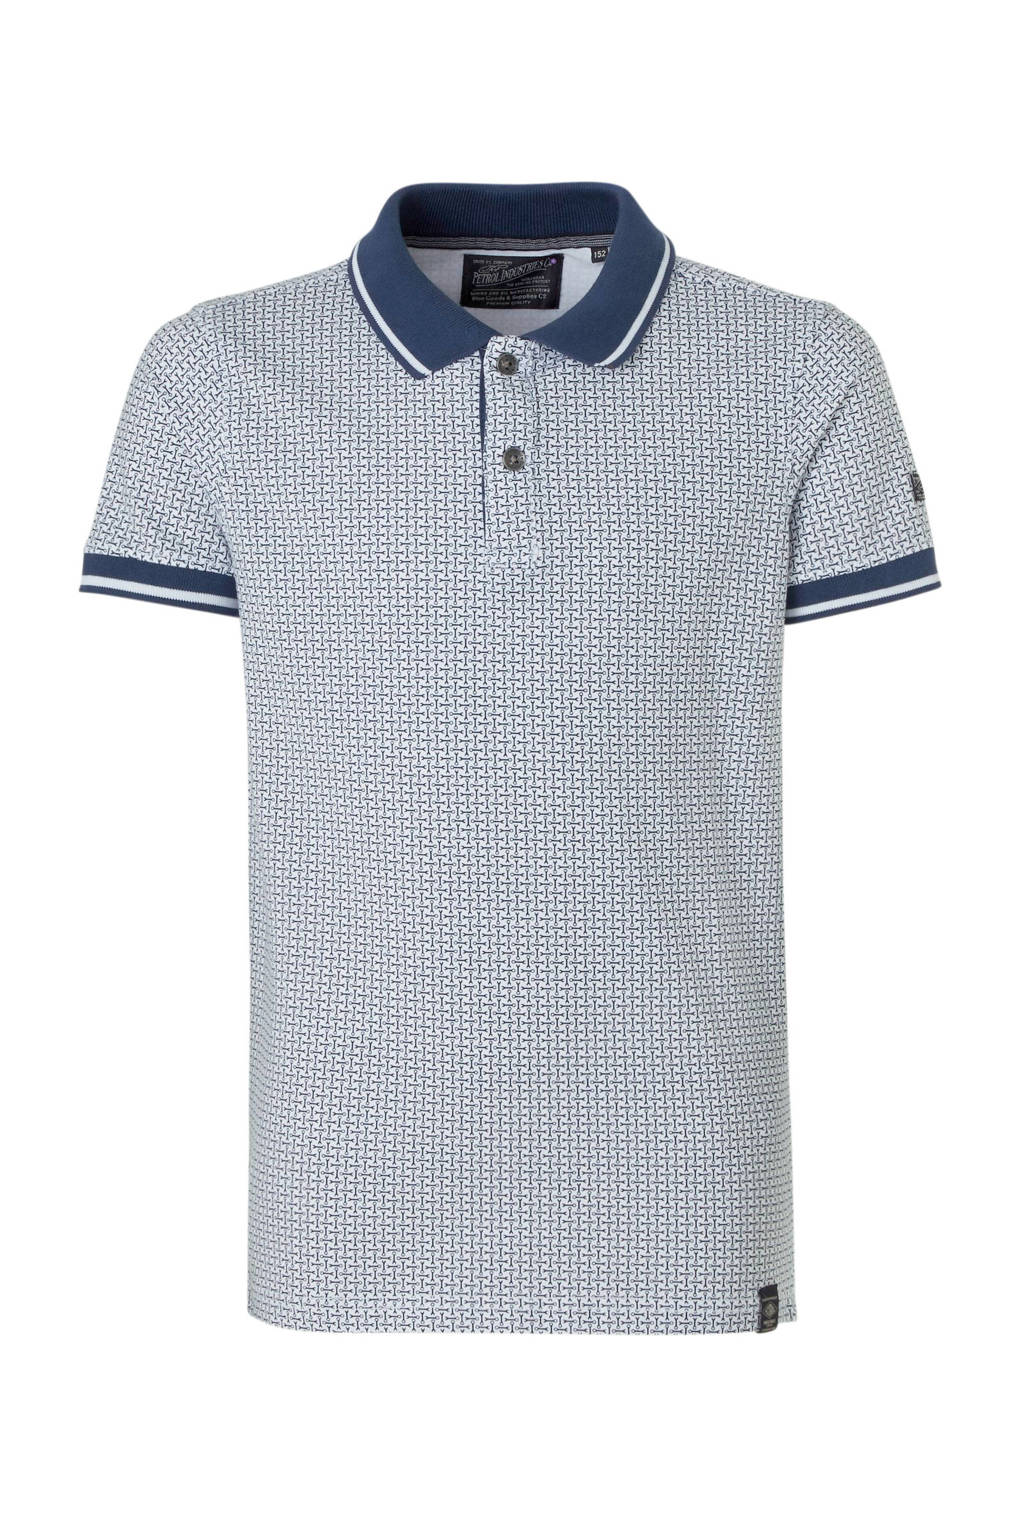 Petrol Industries polo met all over print wit/donkerblauw, Wit/donkerblauw